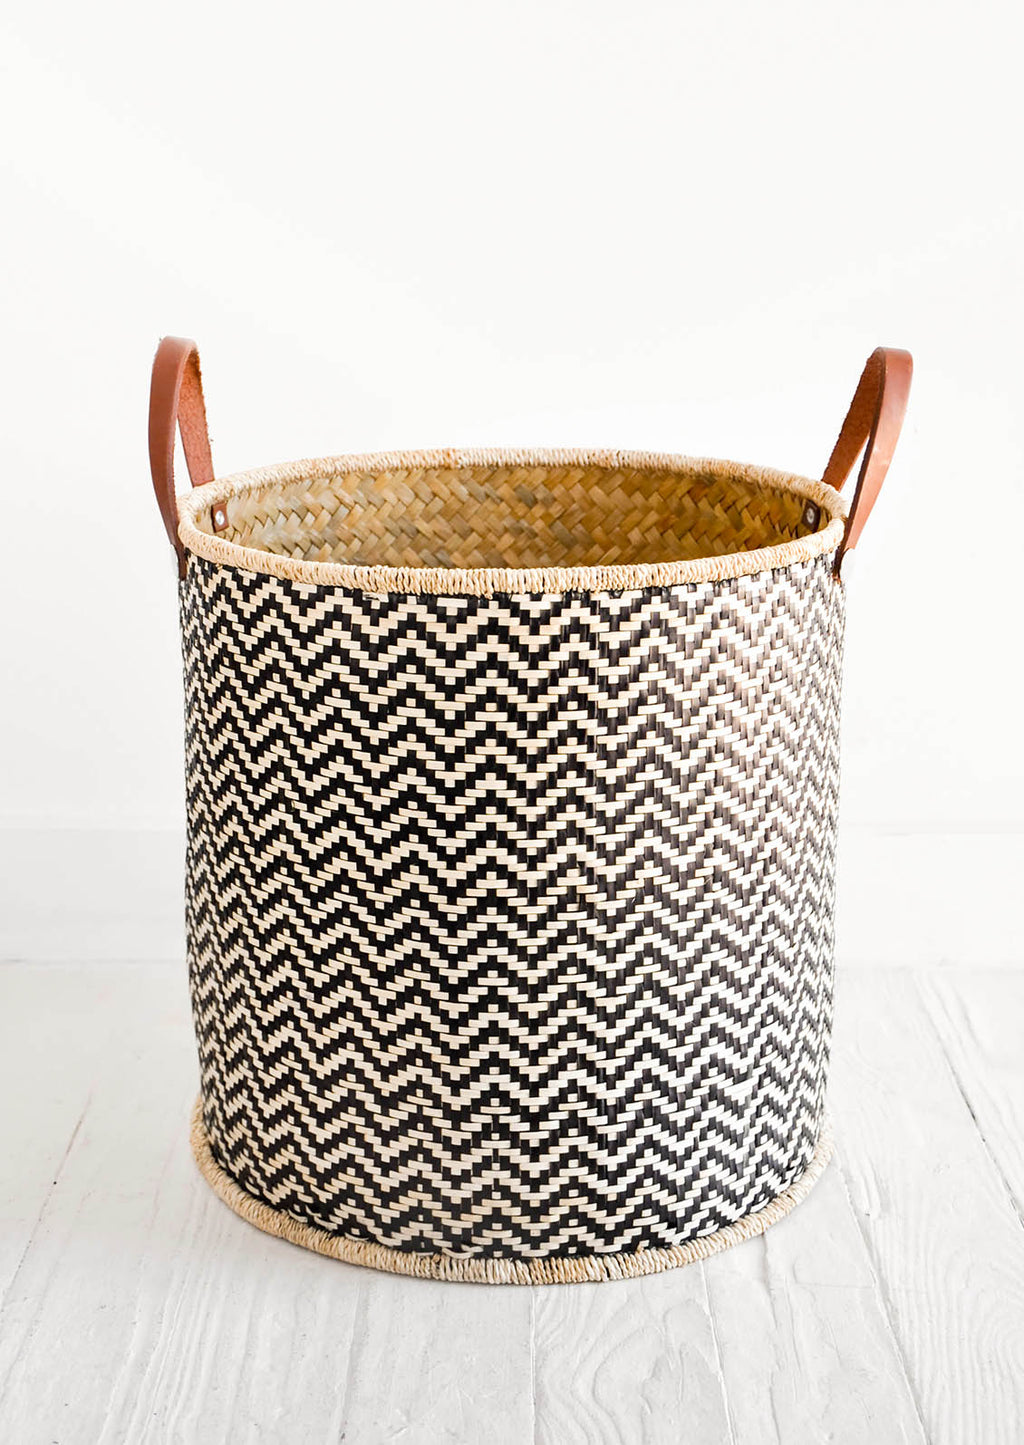 1: Round storage bin in natural material with allover black zigzag pattern and leather handles